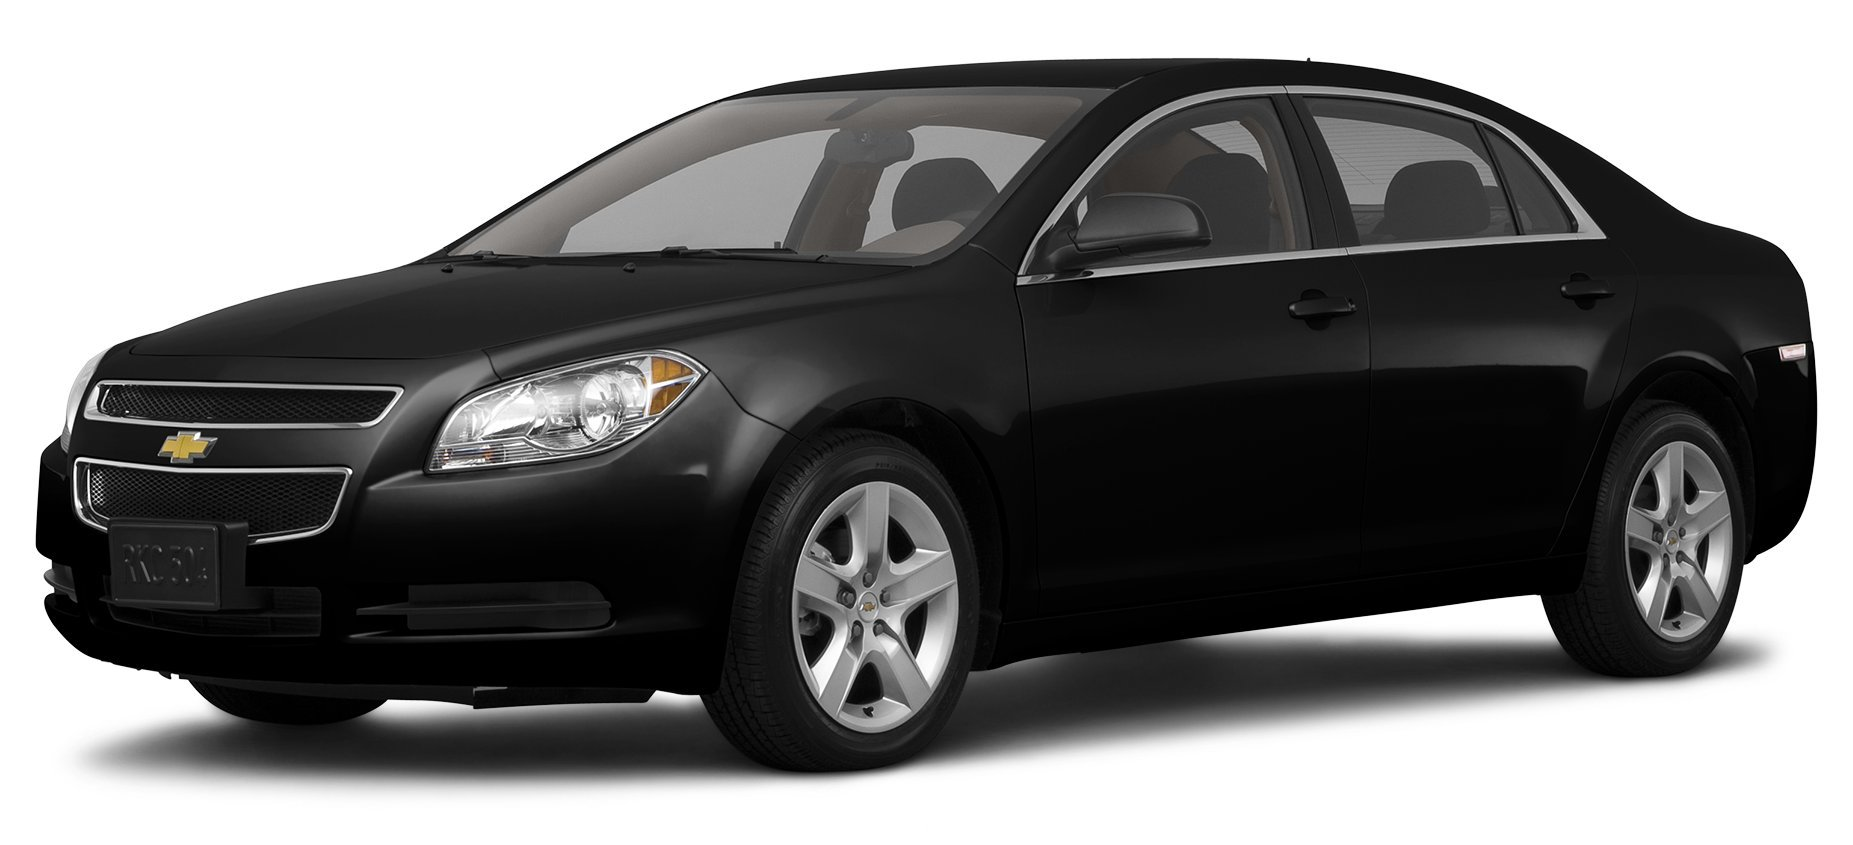 71uqqid76RL amazon com 2011 chevrolet malibu reviews, images, and specs vehicles Wiring Harness Diagram at eliteediting.co